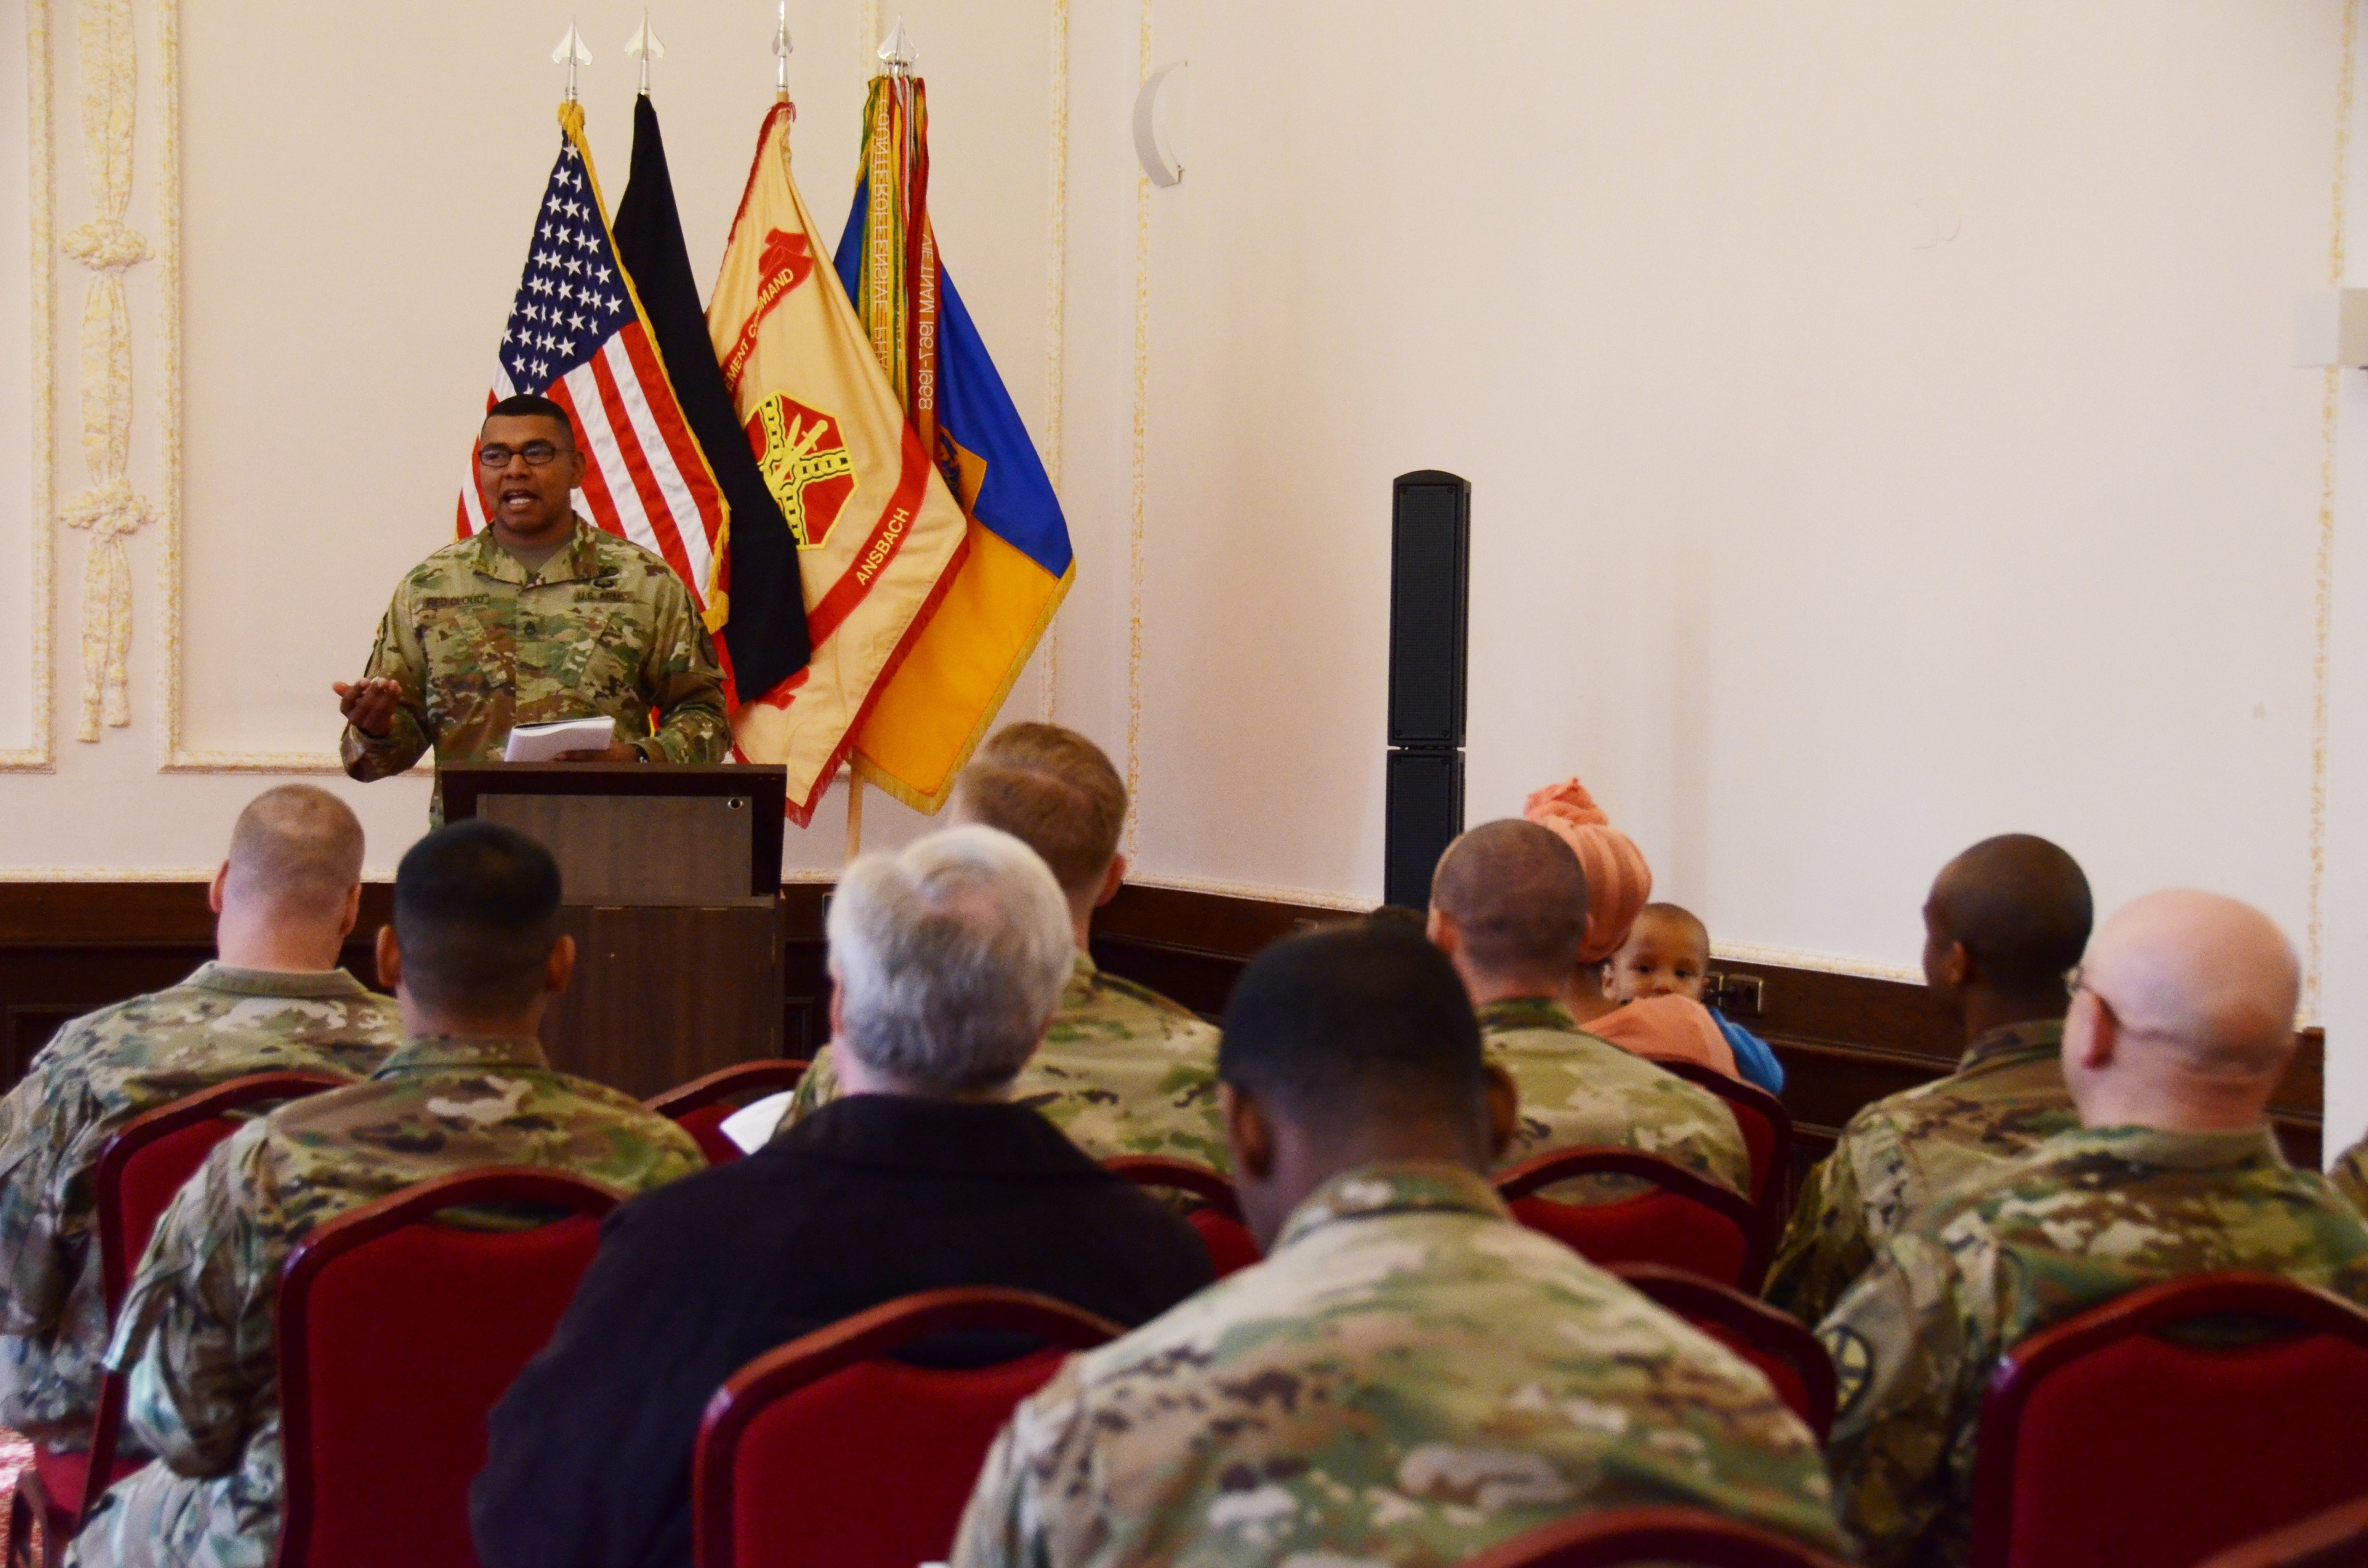 Staff Sgt. Lionell Red Cloud, patrol team leader with the U.S. Army Garrison Ansbach Provost Marshal's Office, shares his Family's history.